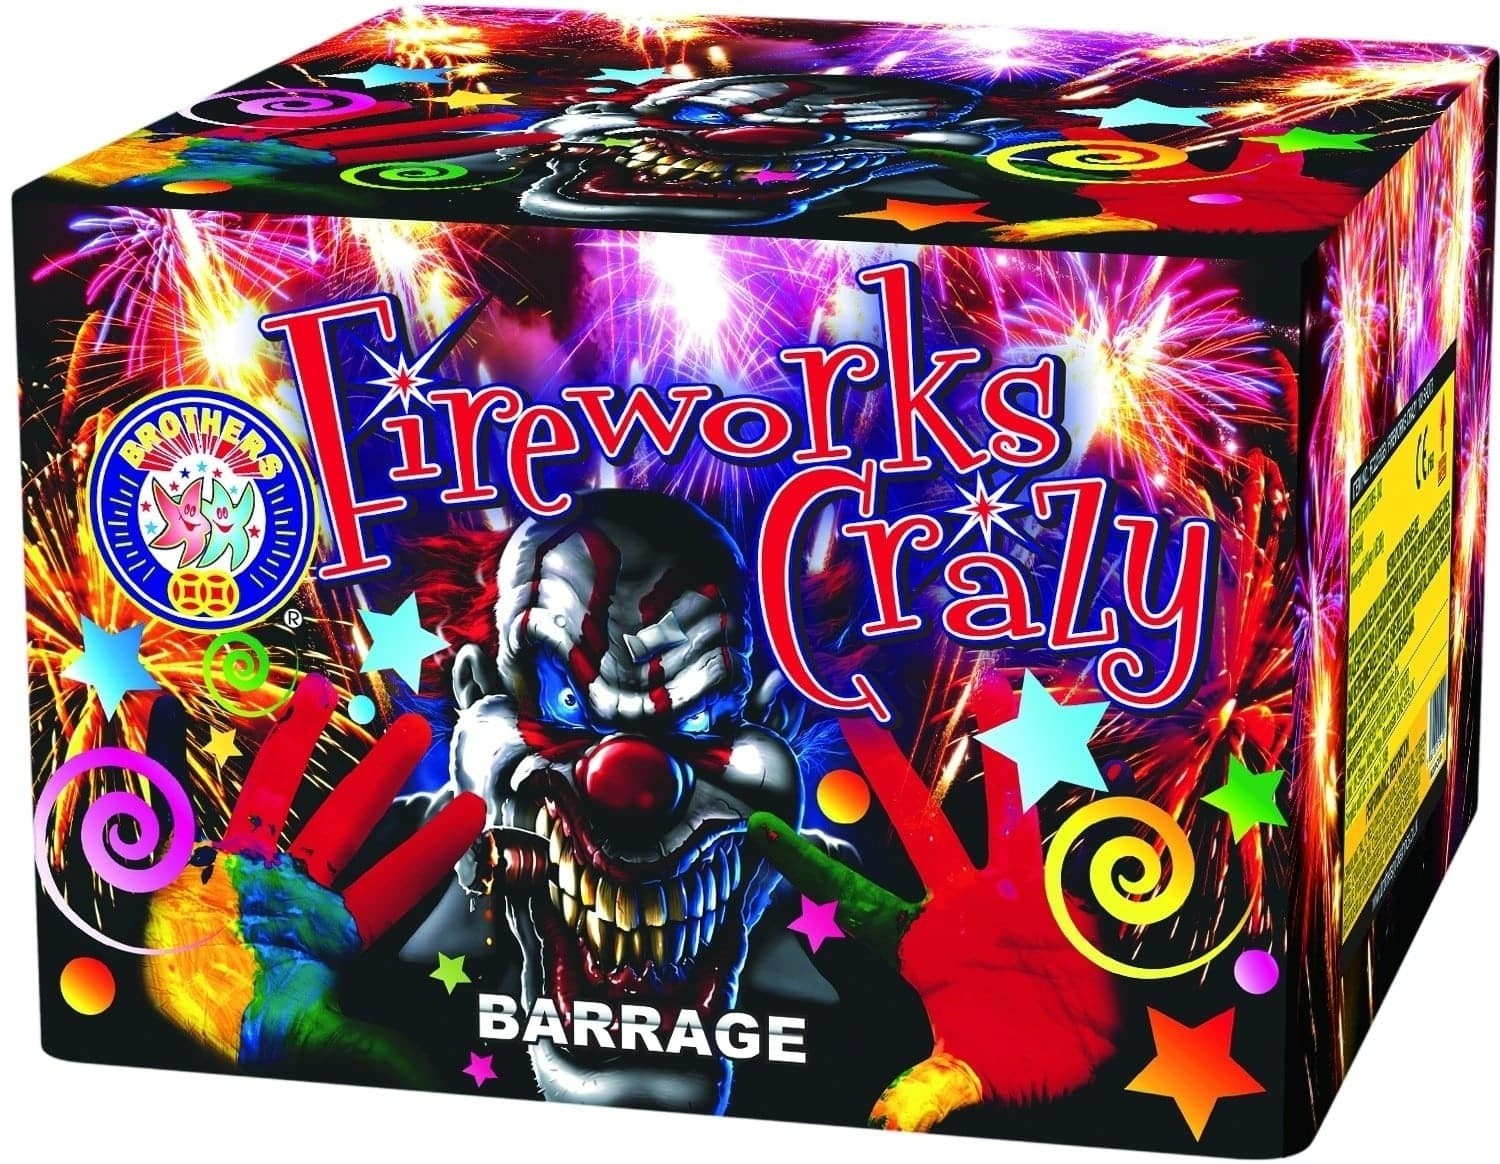 Fireworks Crazy By Brothers Pyrotechnics